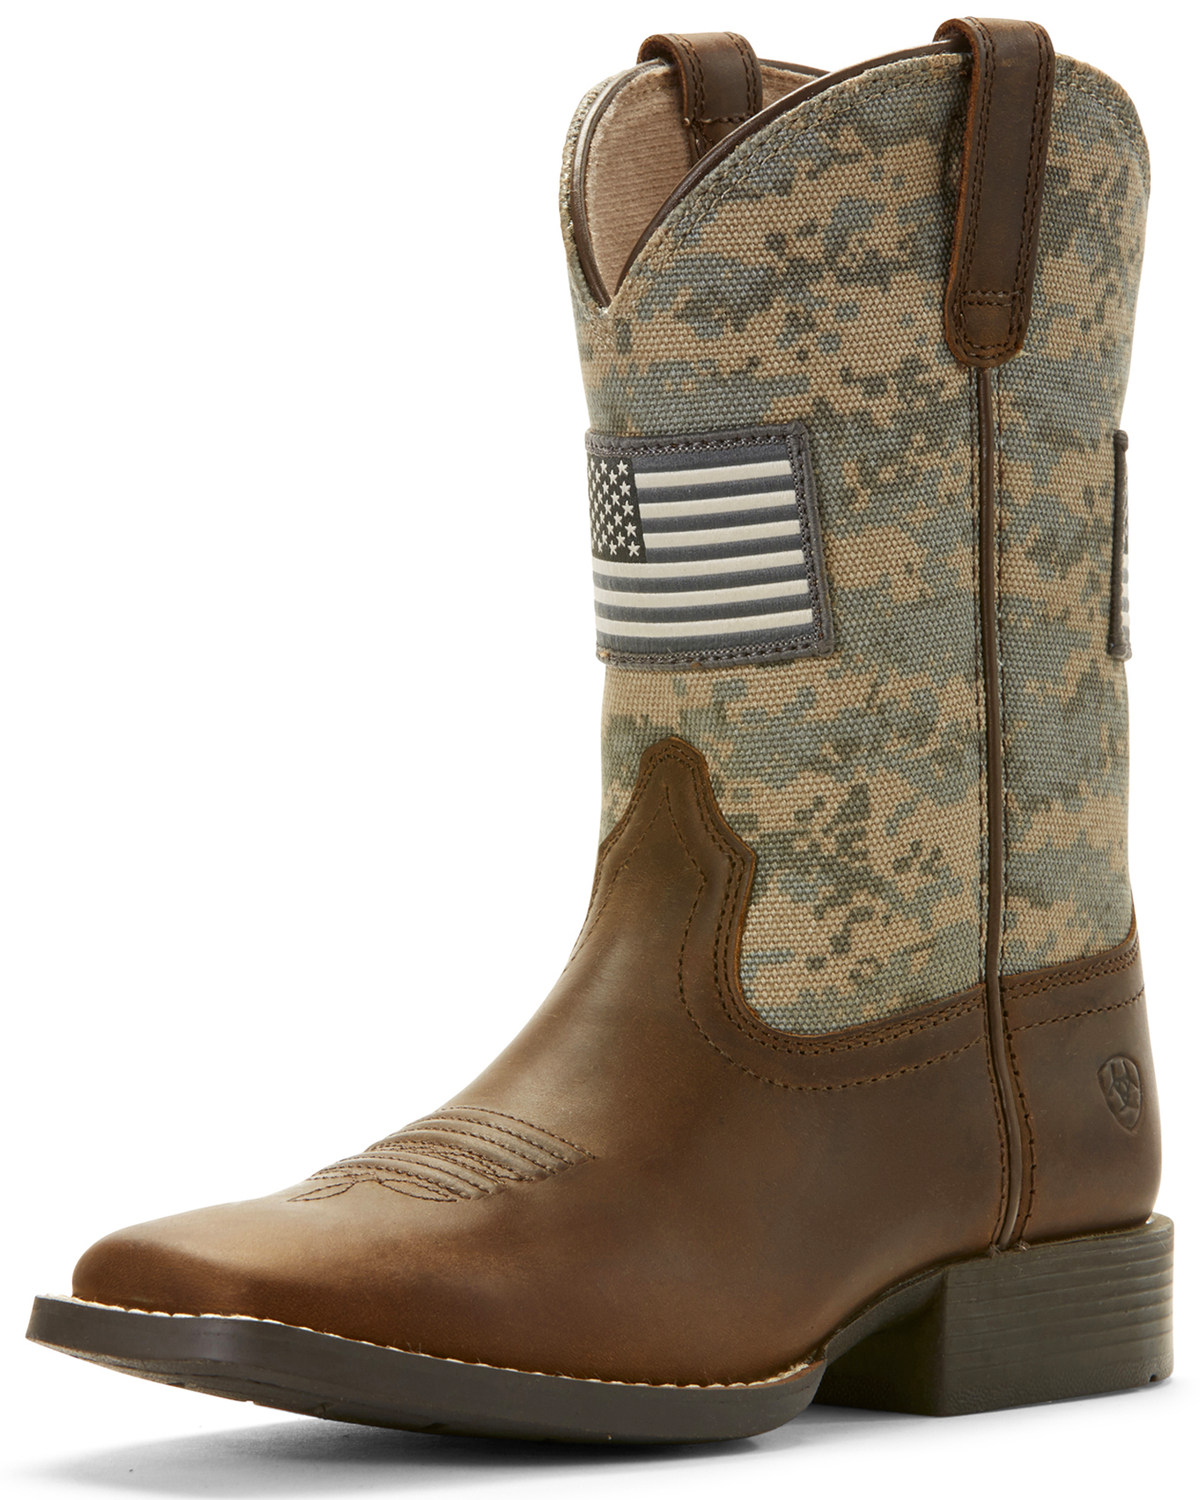 4022e69ecae Ariat Kid's Youth Patriot American Flag Western Boots - Wide Square Toe